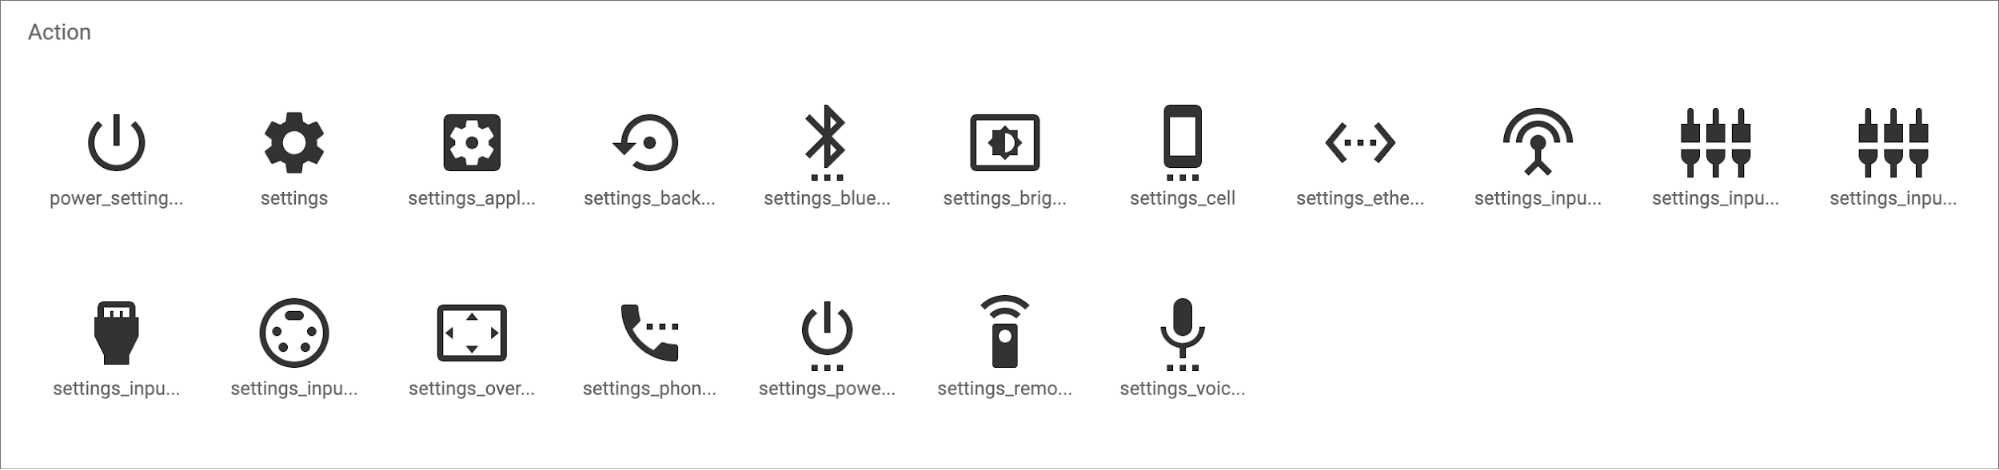 less is more apple s inconsistent ellipsis icons inspire user confusion tidbits apple s inconsistent ellipsis icons